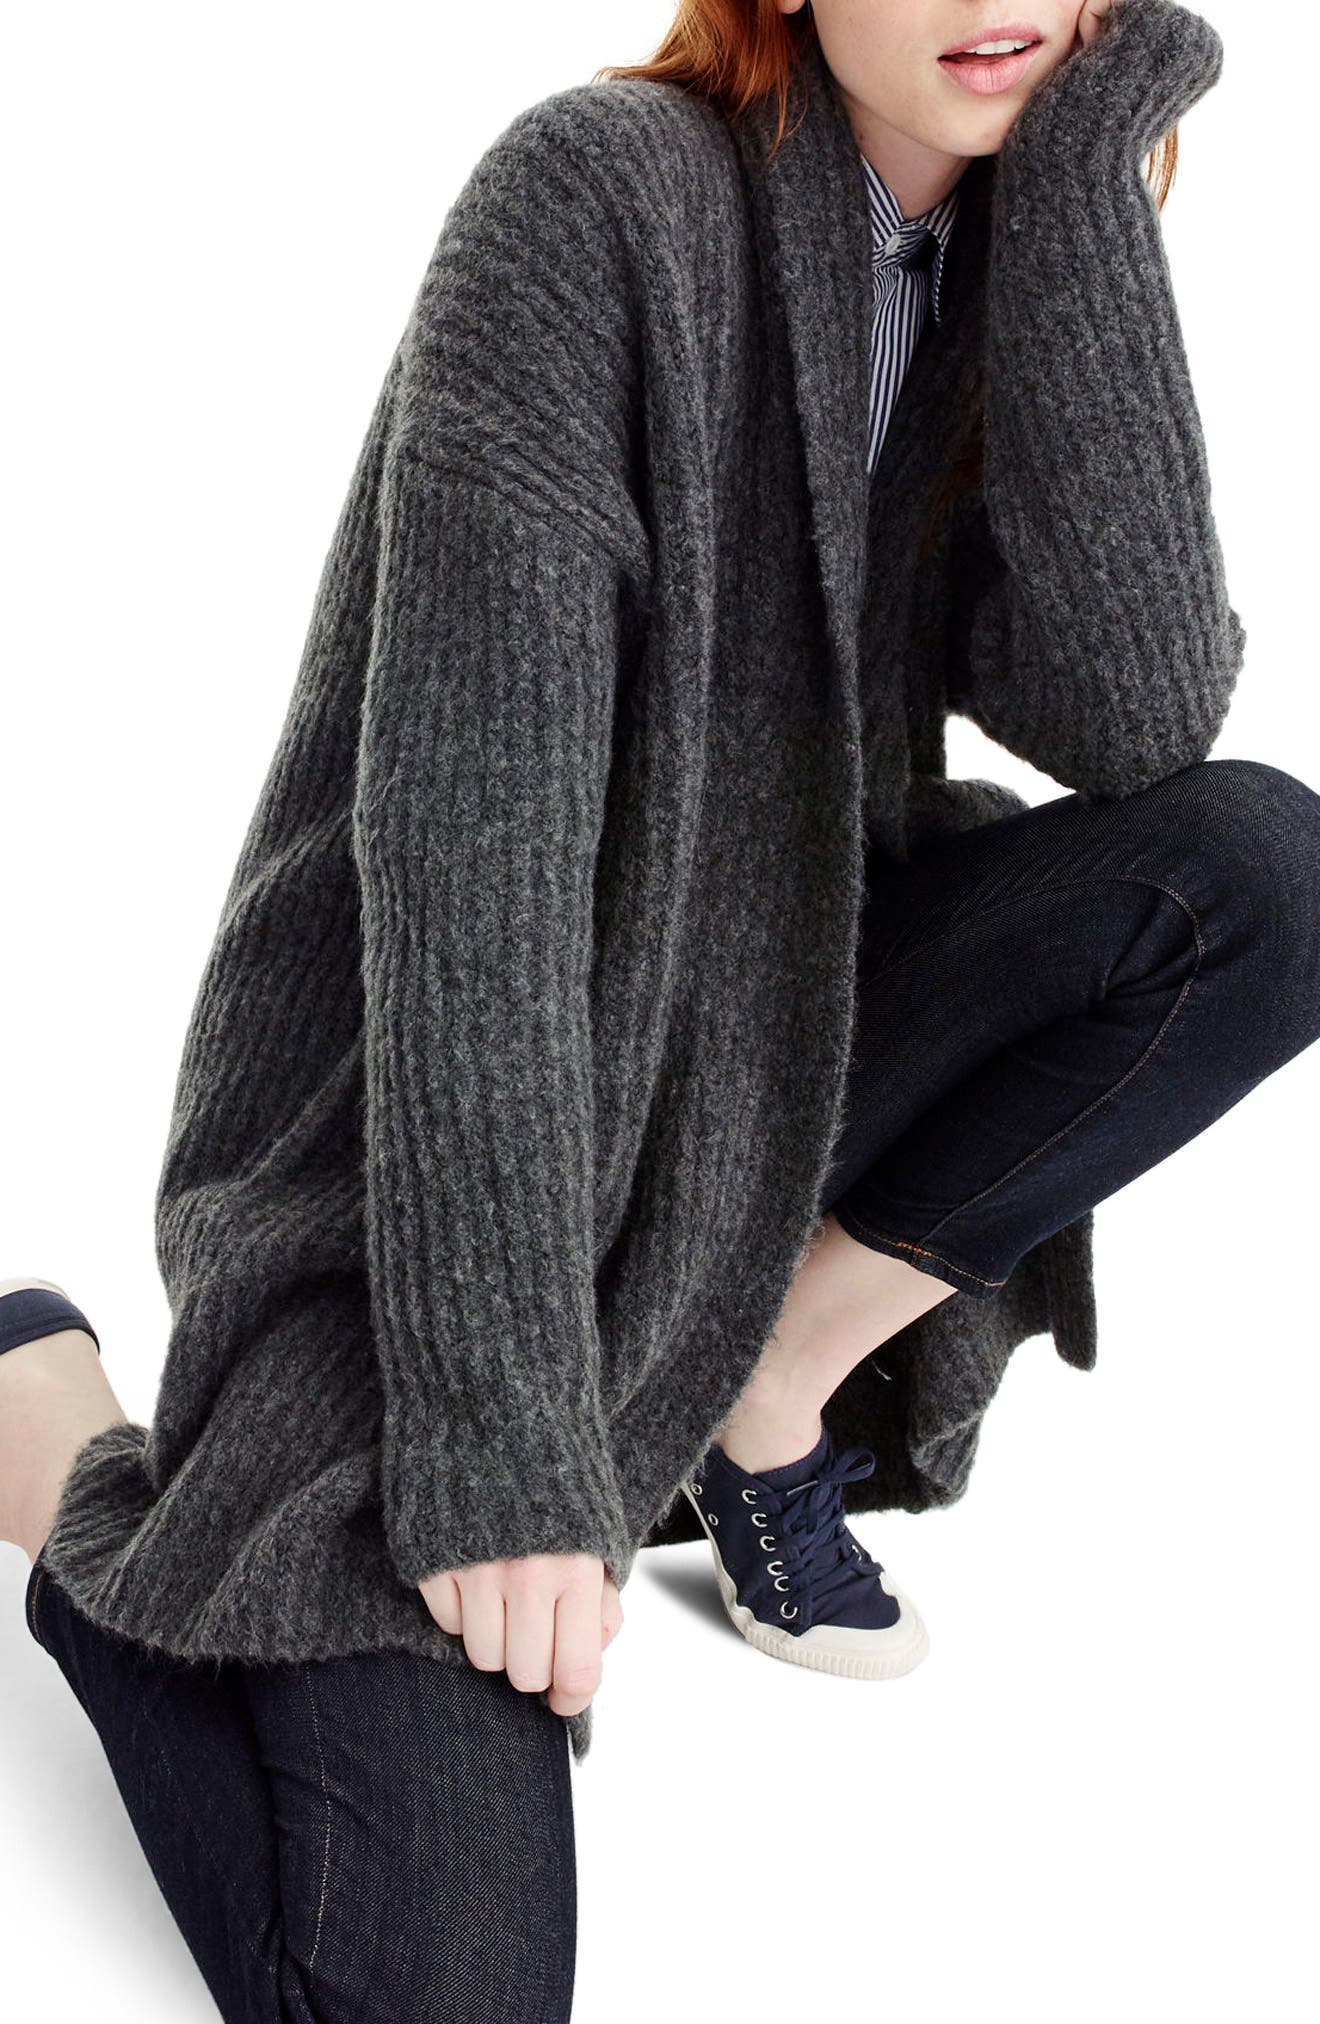 Ribbed Shawl Cardigan,                         Main,                         color, Heather Carbon